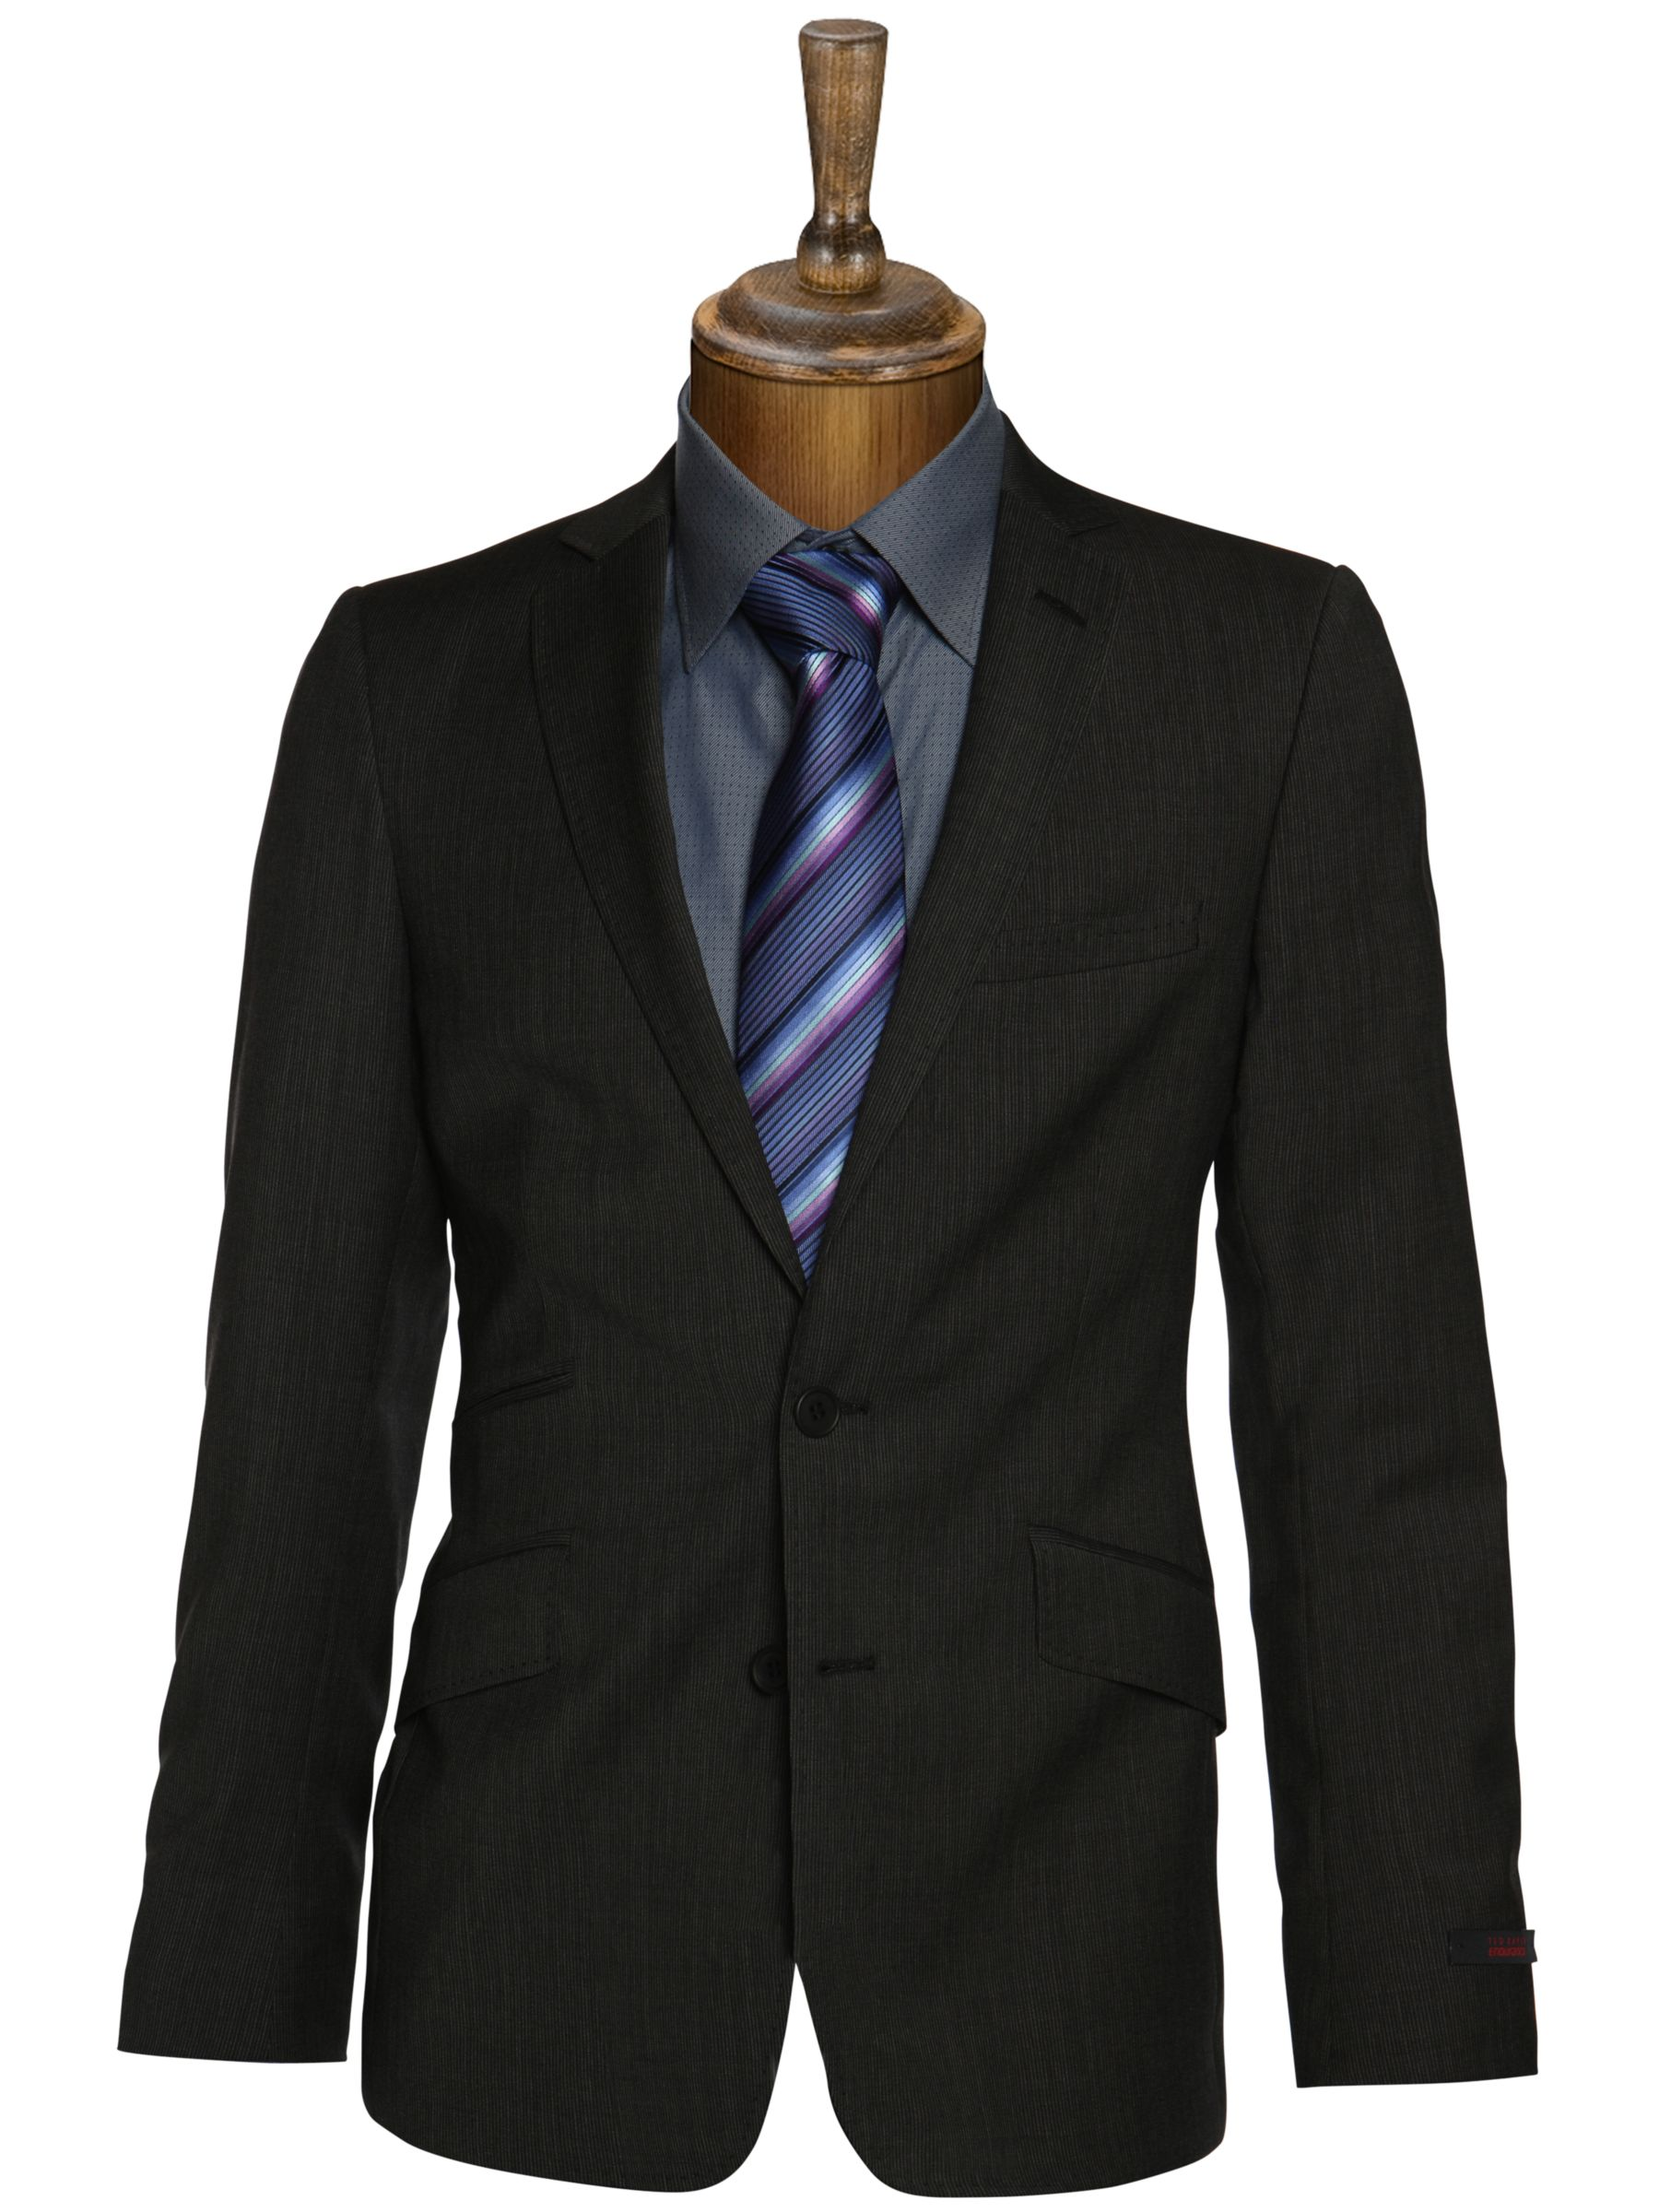 Ted Baker Cusco Self Stripe Suit Jacket, Grey at JohnLewis